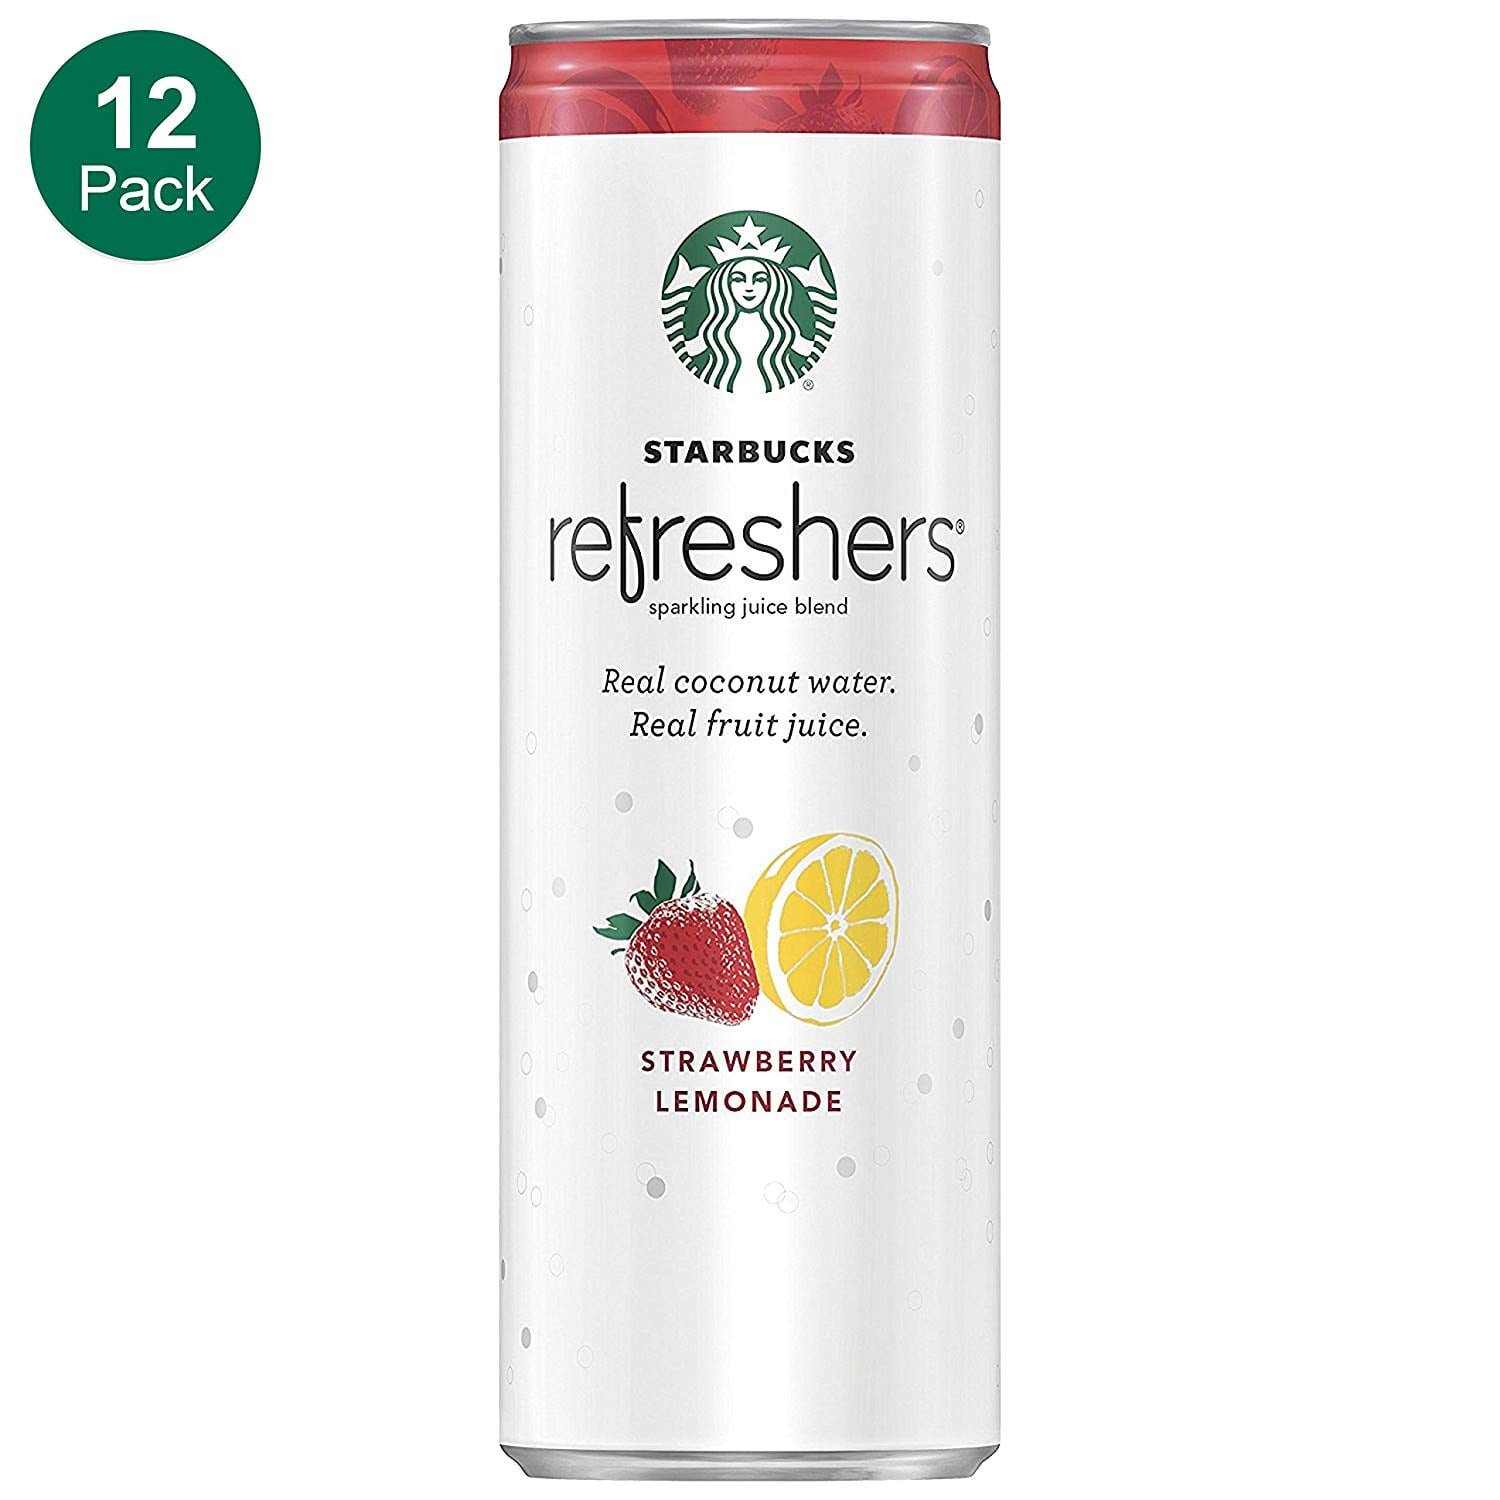 12-Pack 12oz. Starbucks Refreshers Sparkling Juice (Strawberry Lemonade) $10.62 5% or $8.51 15%